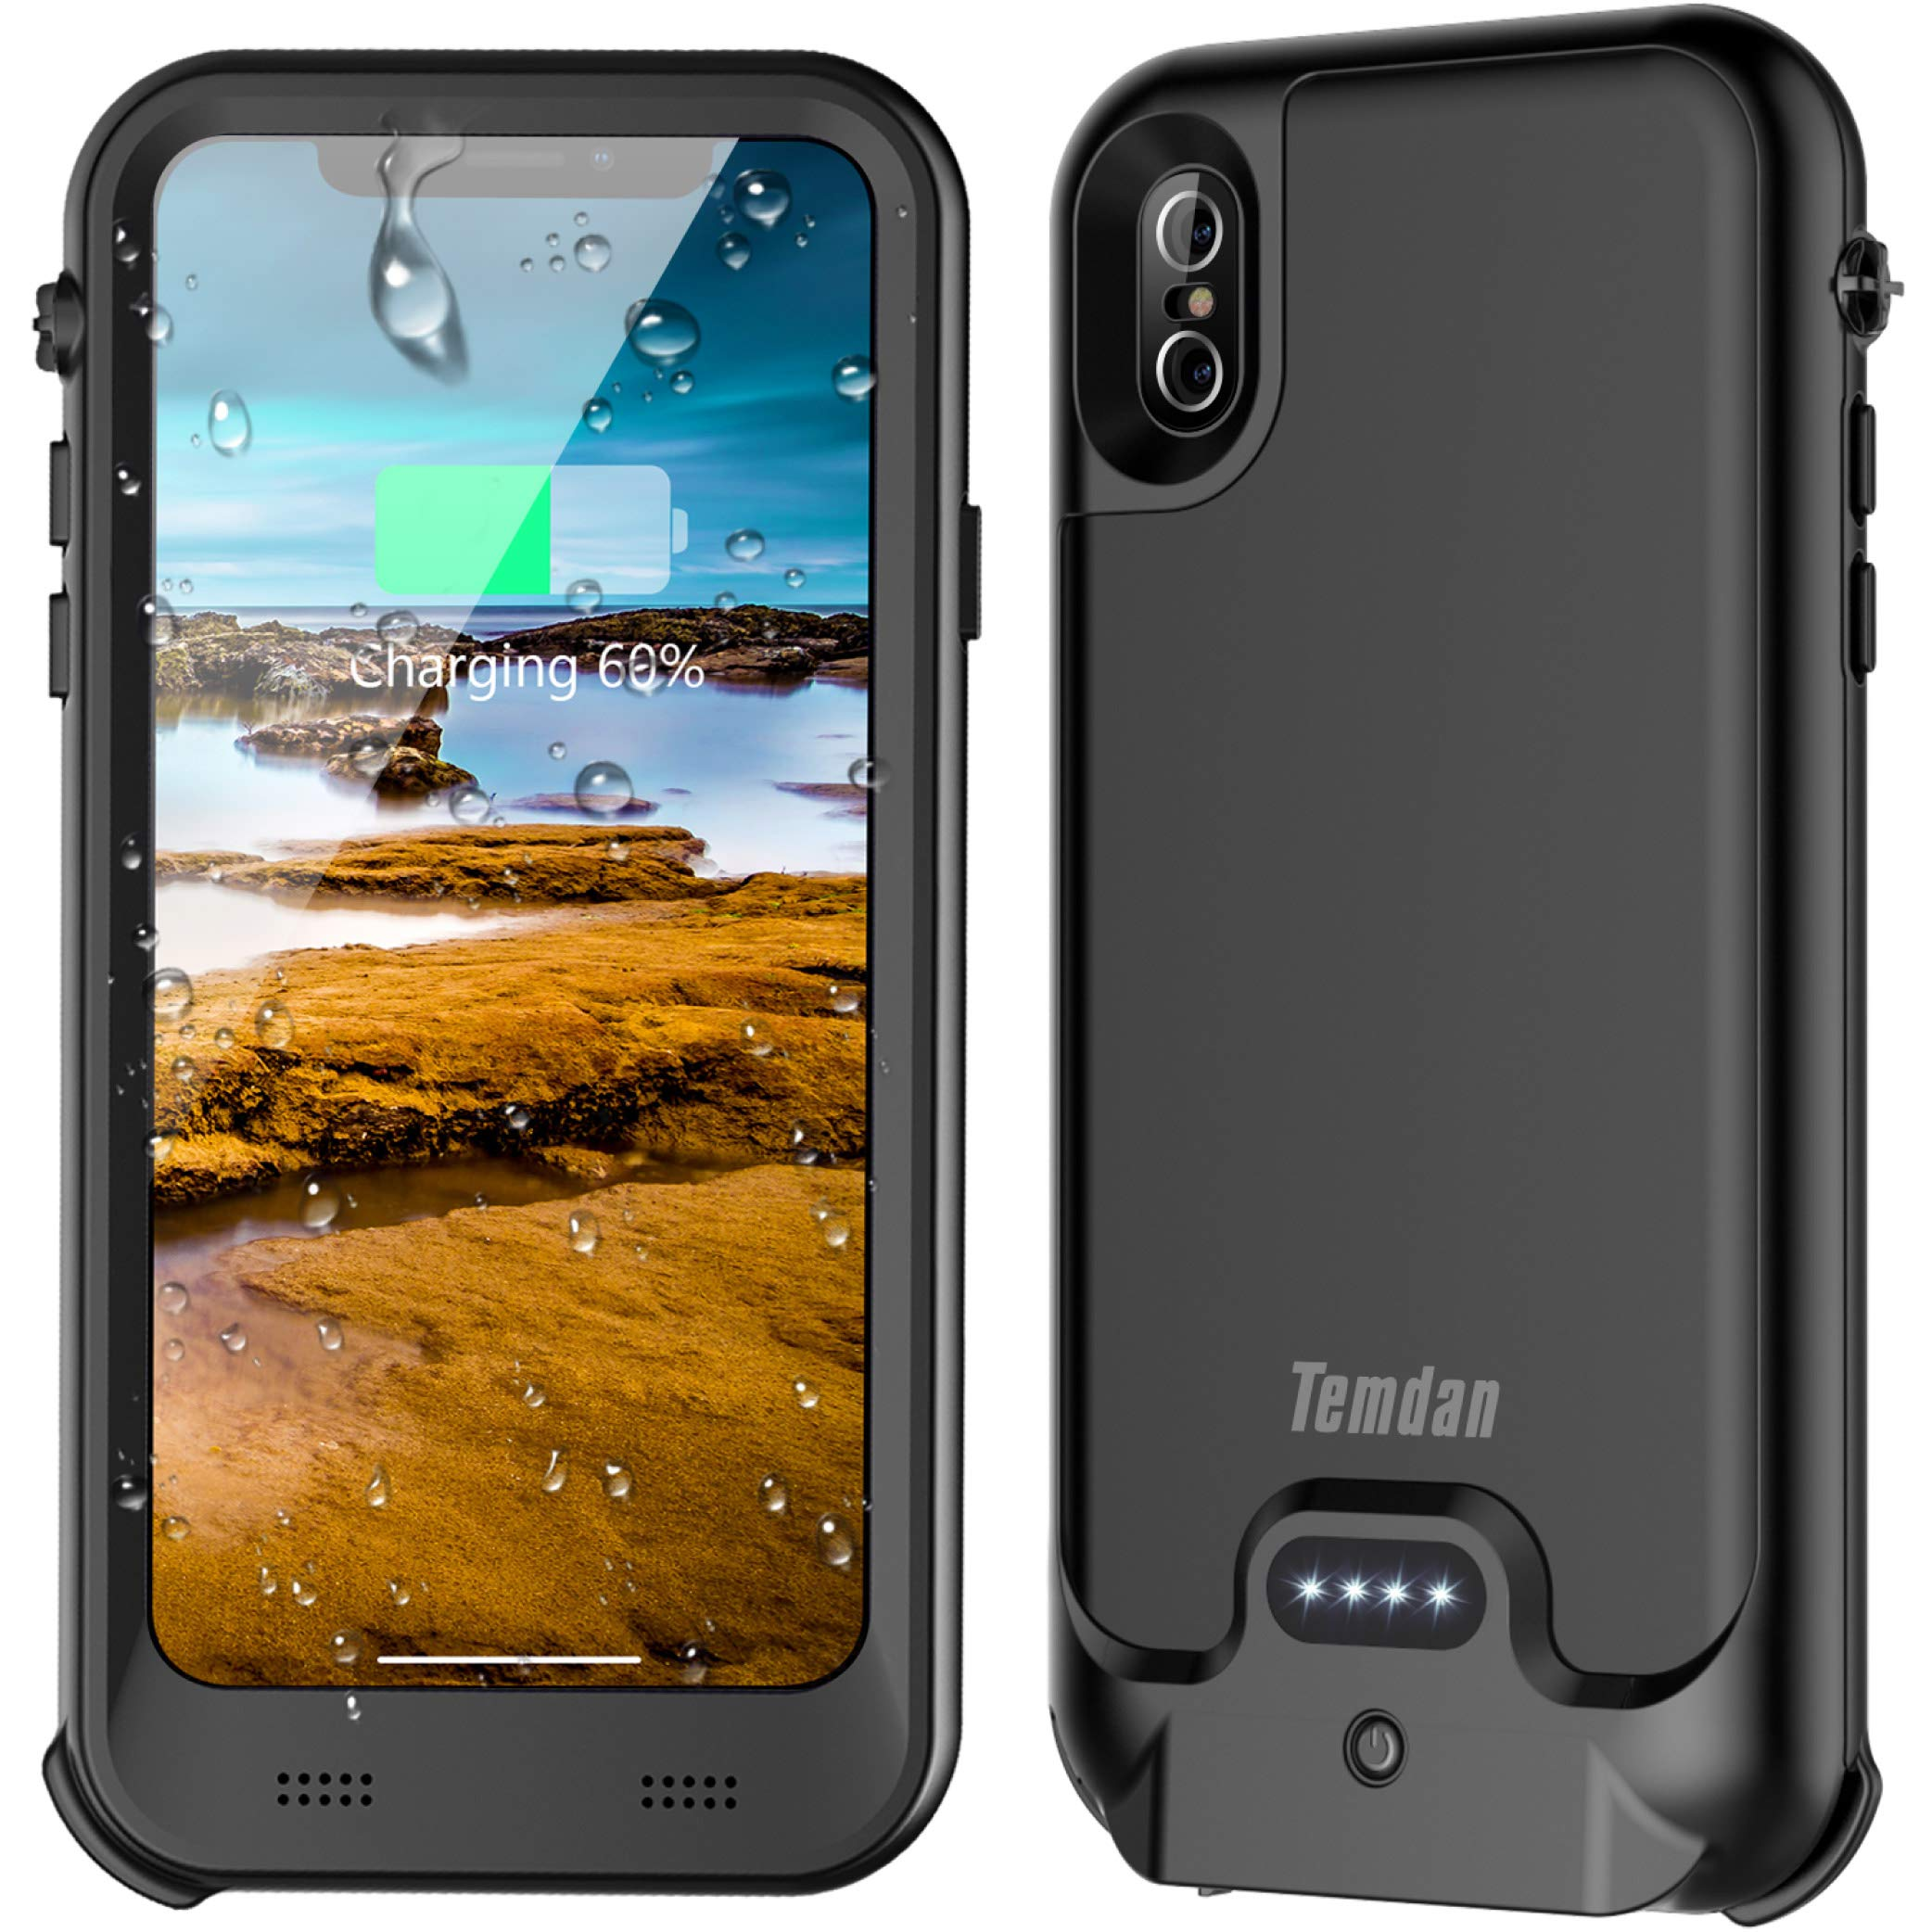 2018 iPhone X/XS Waterproof Battery Case with Qi Wireless Charging, Temdan 3600mAh Charger Case with Screen Protector Rechargeable Rugged Power Charging Case QI Battery Case for iPhone X/Xs(5.8inch)